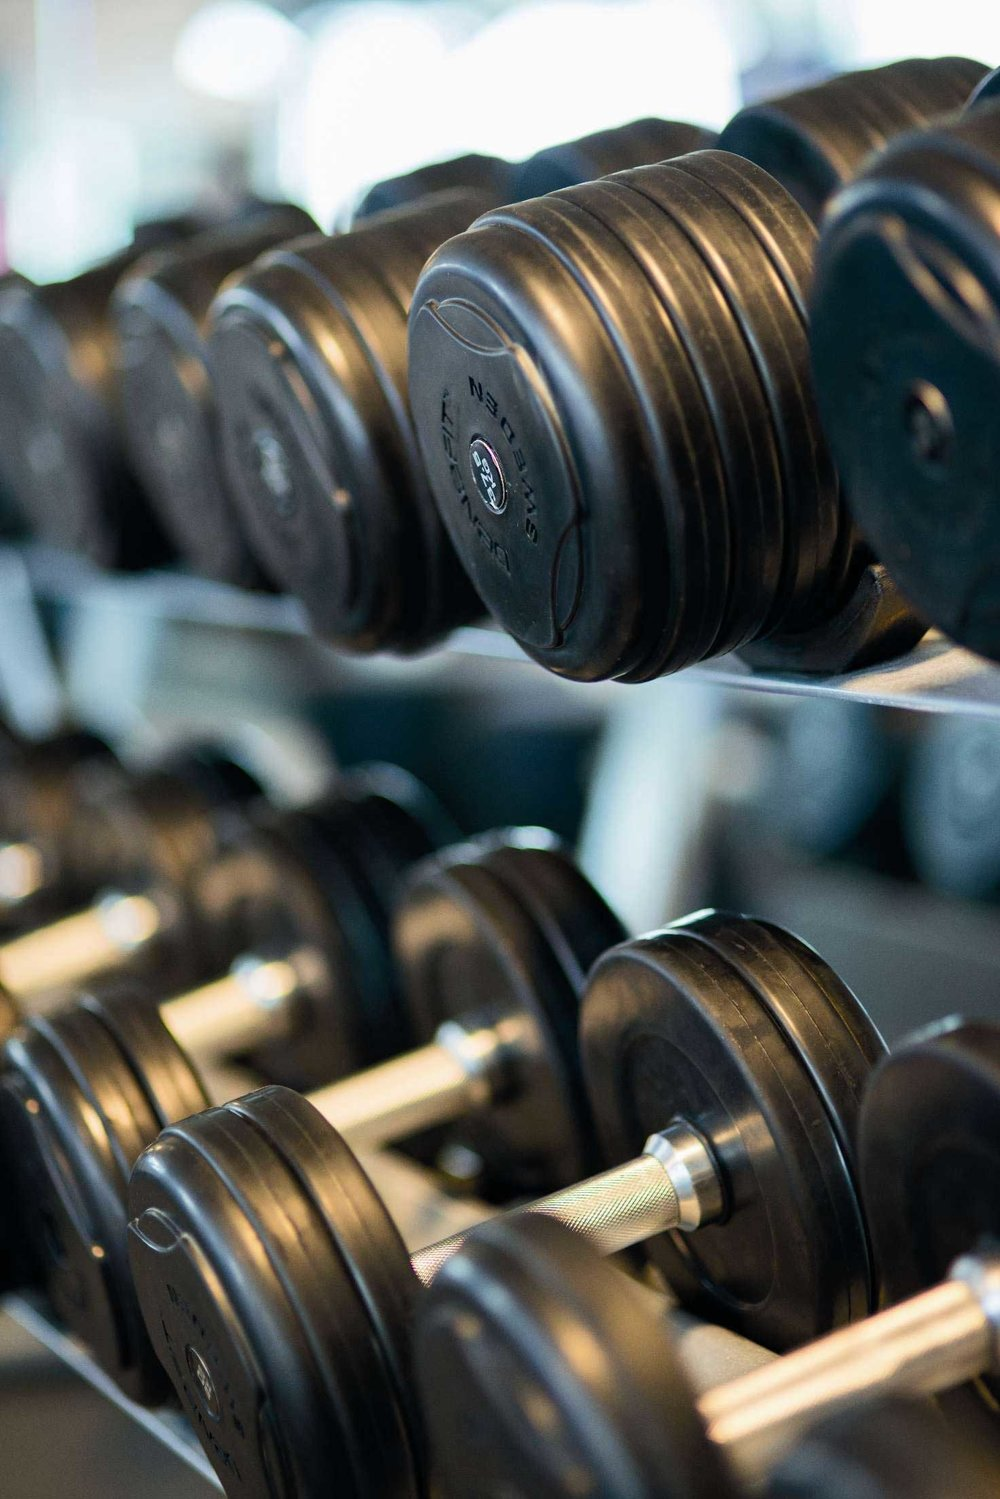 bodybuilding-close-up-dumbbells-w201.jpg